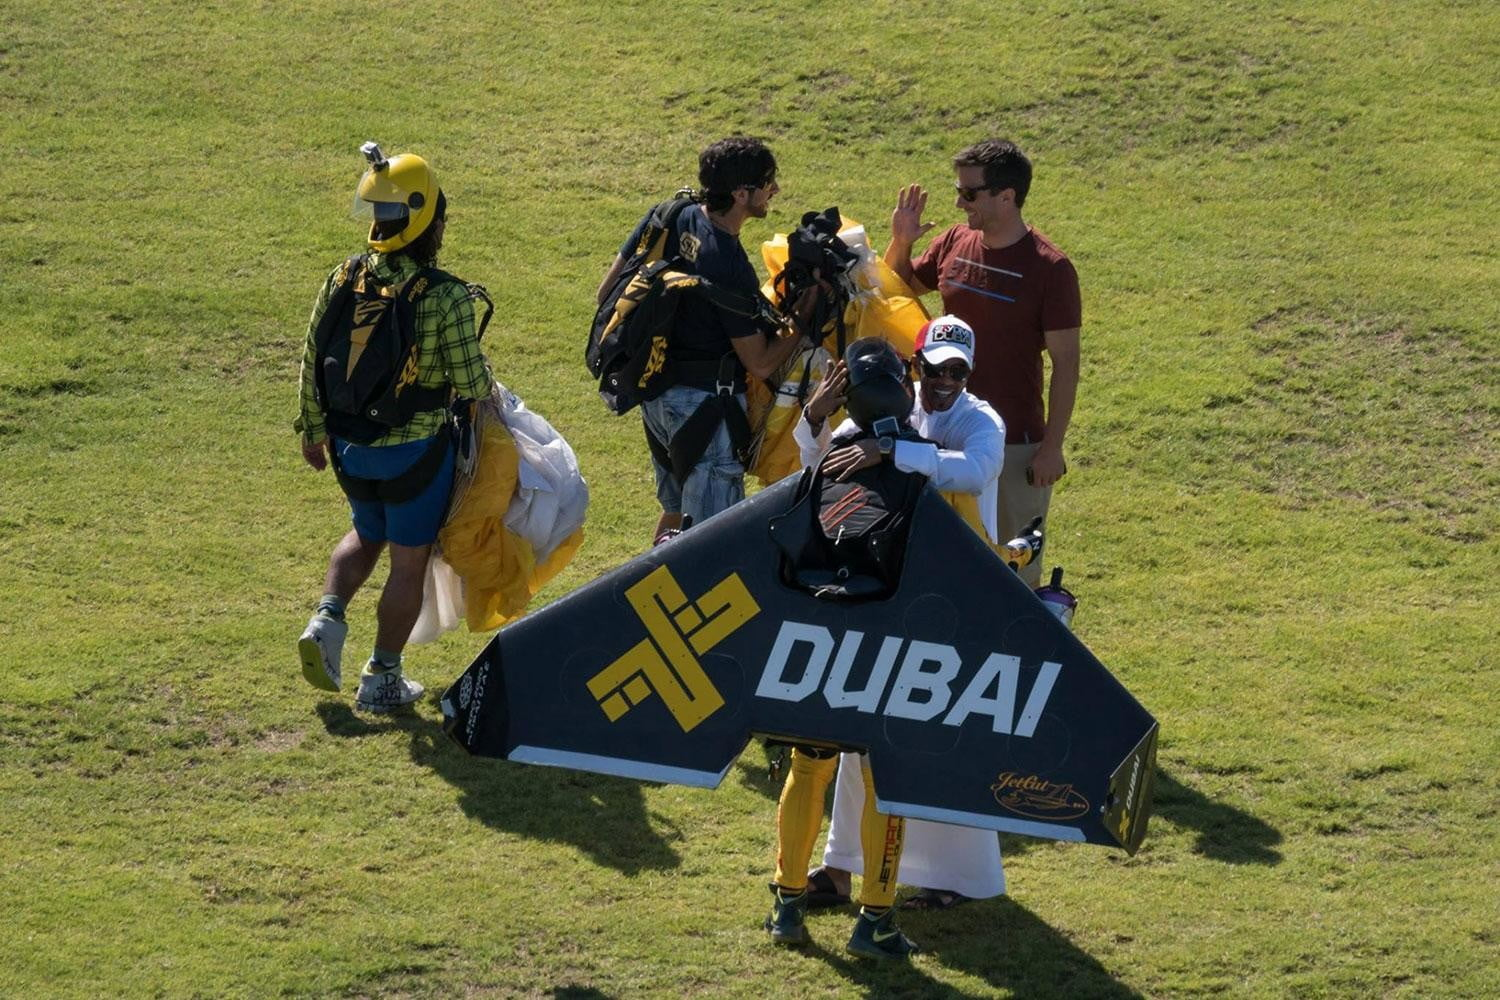 Jetman Dubai grass